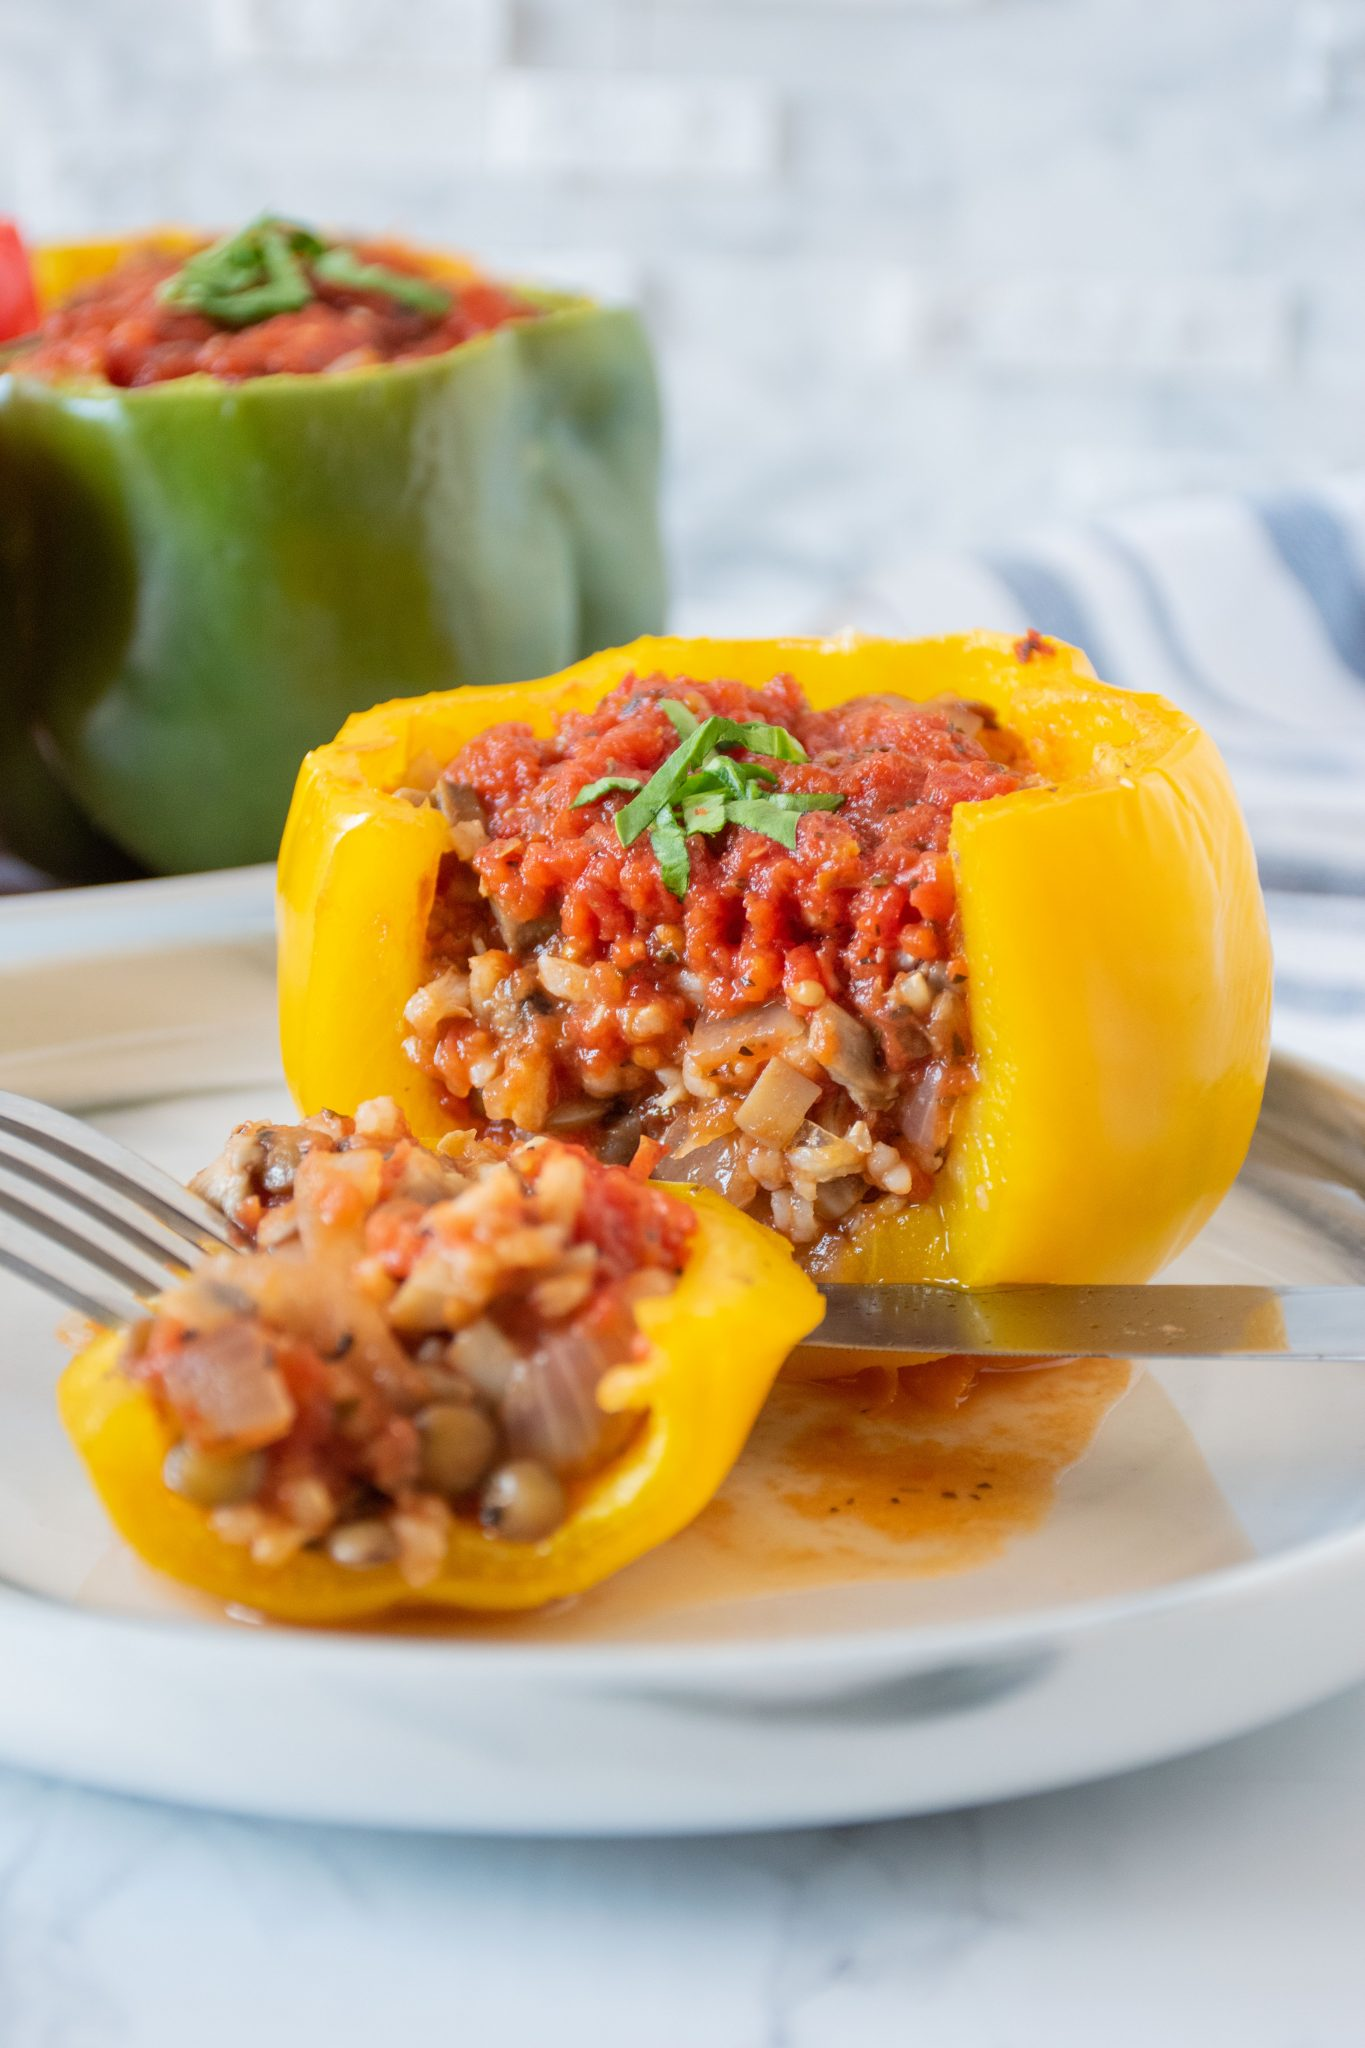 A yellow stuffed pepper, side cut open to reveal stuffing, on a plate.